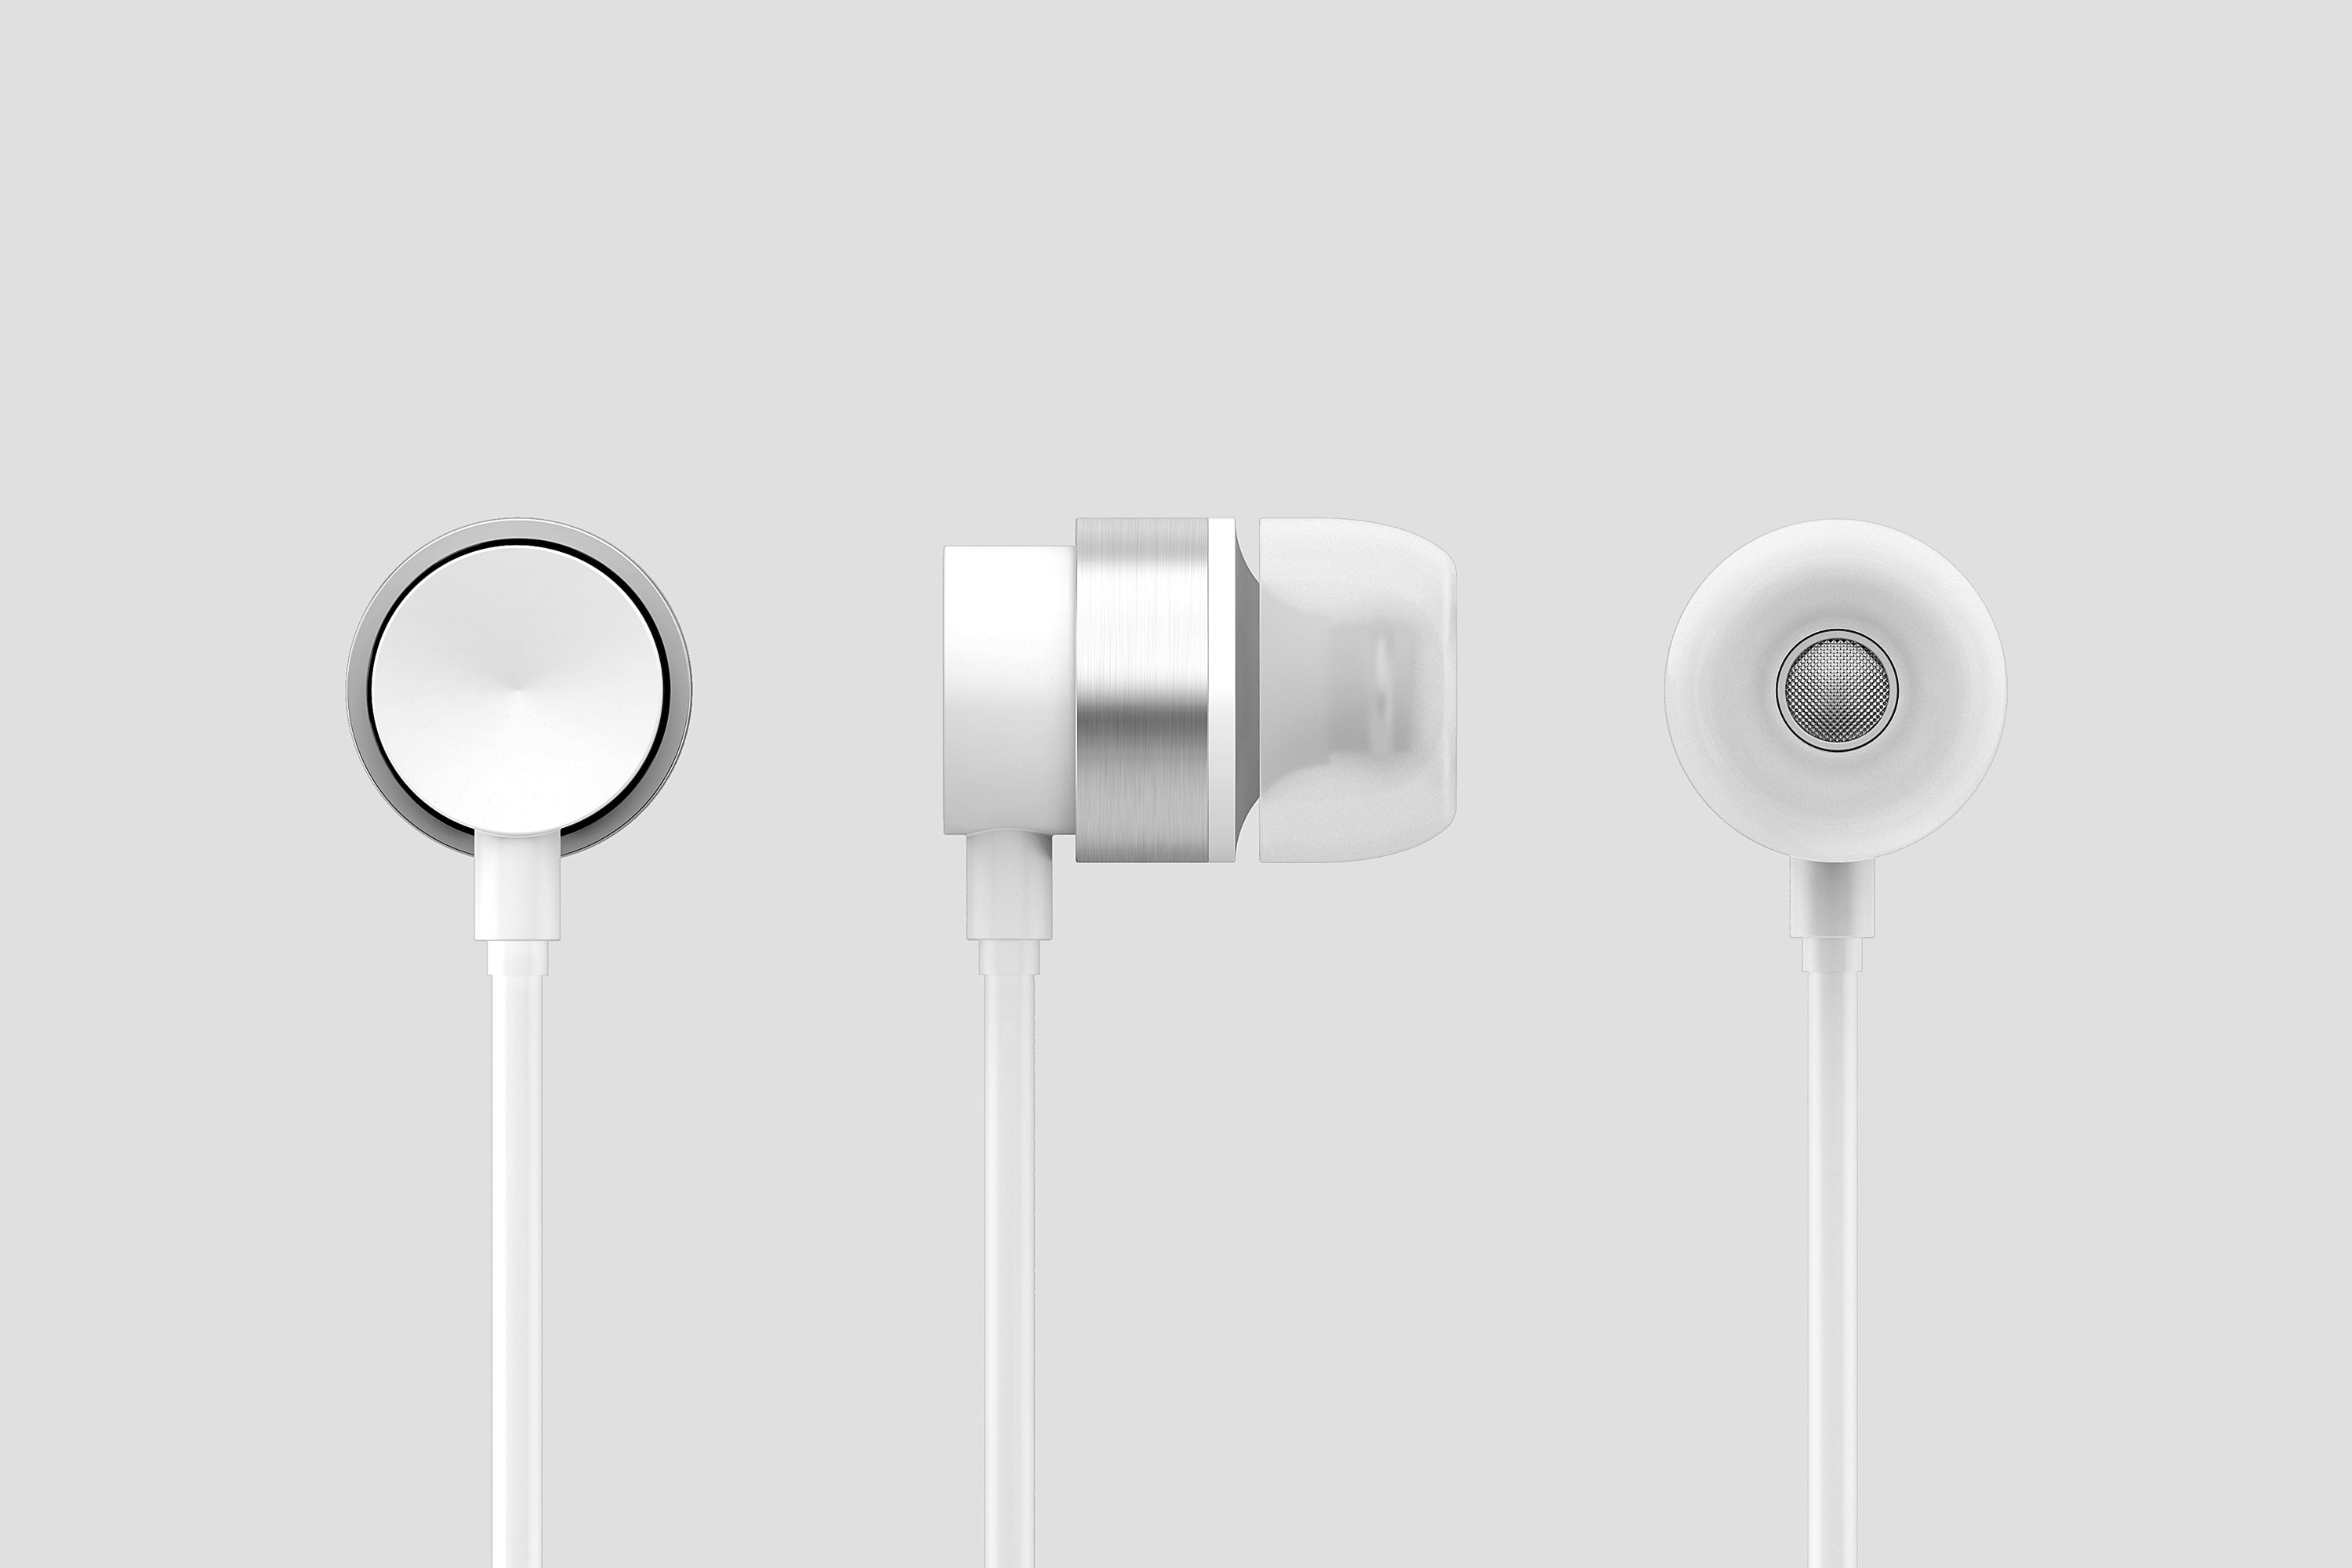 front, back and side view of white headphones on white background